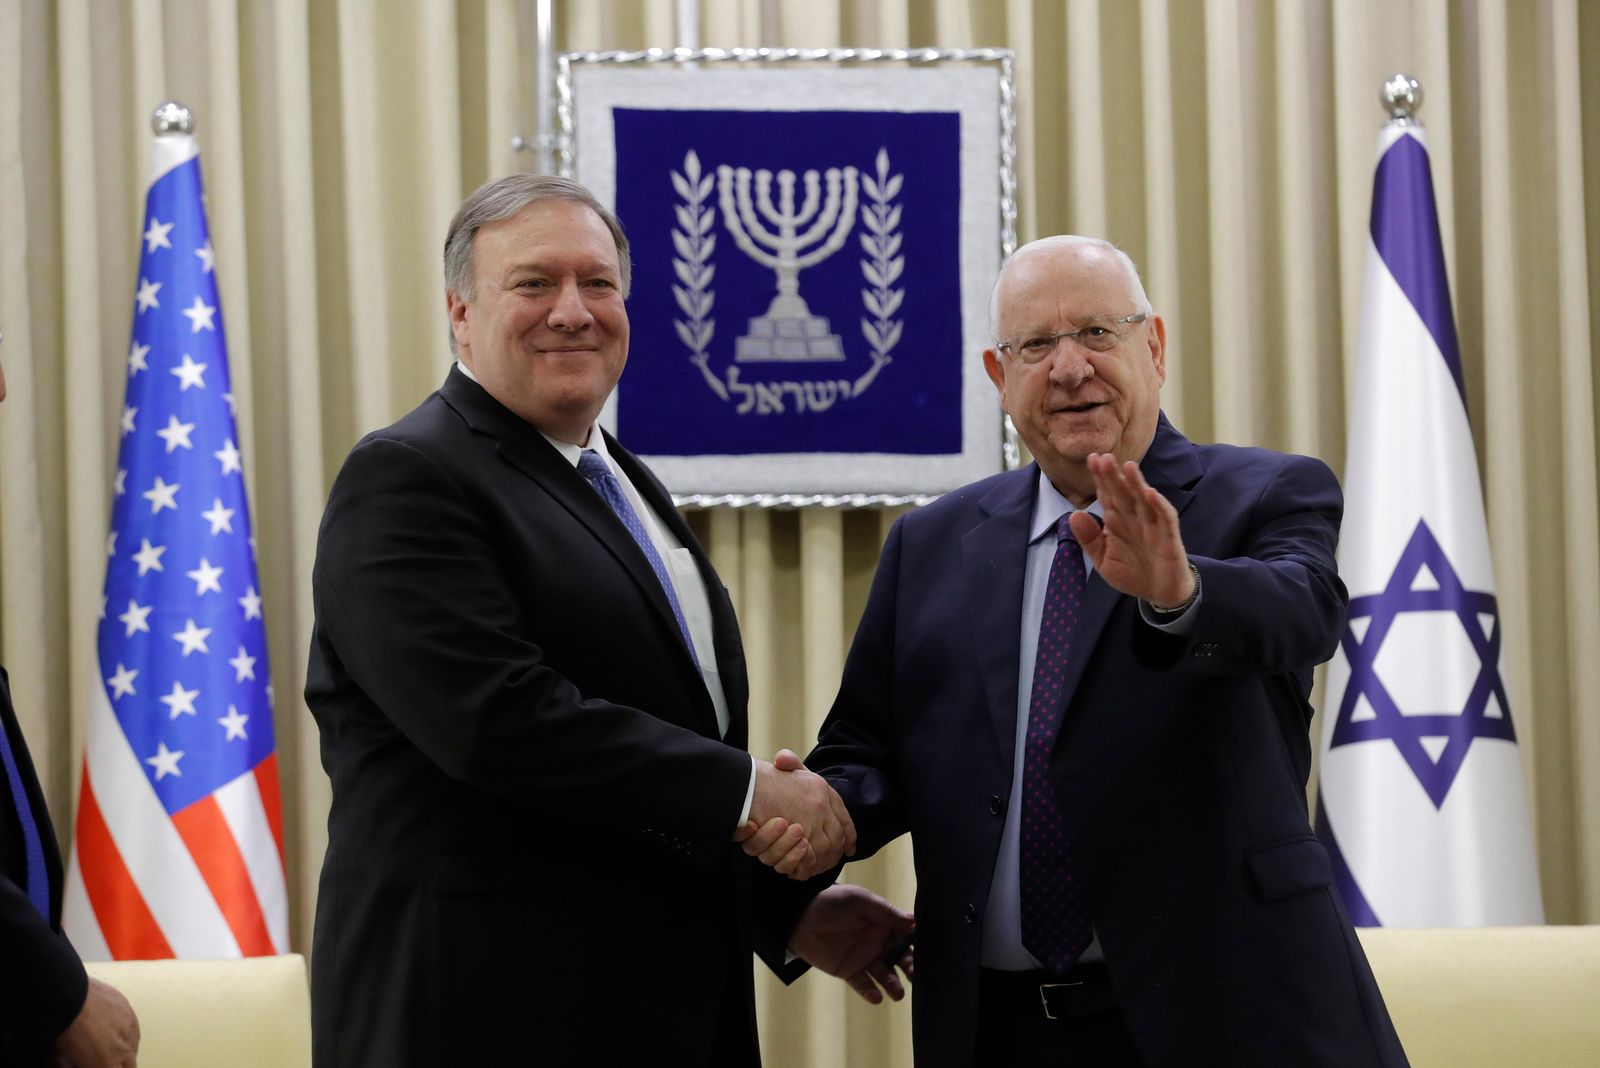 U.S. Secretary of State Mike Pompeo, left, and Israeli President Reuven Rivlin shake hands during their meeting in Jerusalem Thursday, March 21, 2019. (Jim Young/Pool Photo via AP)